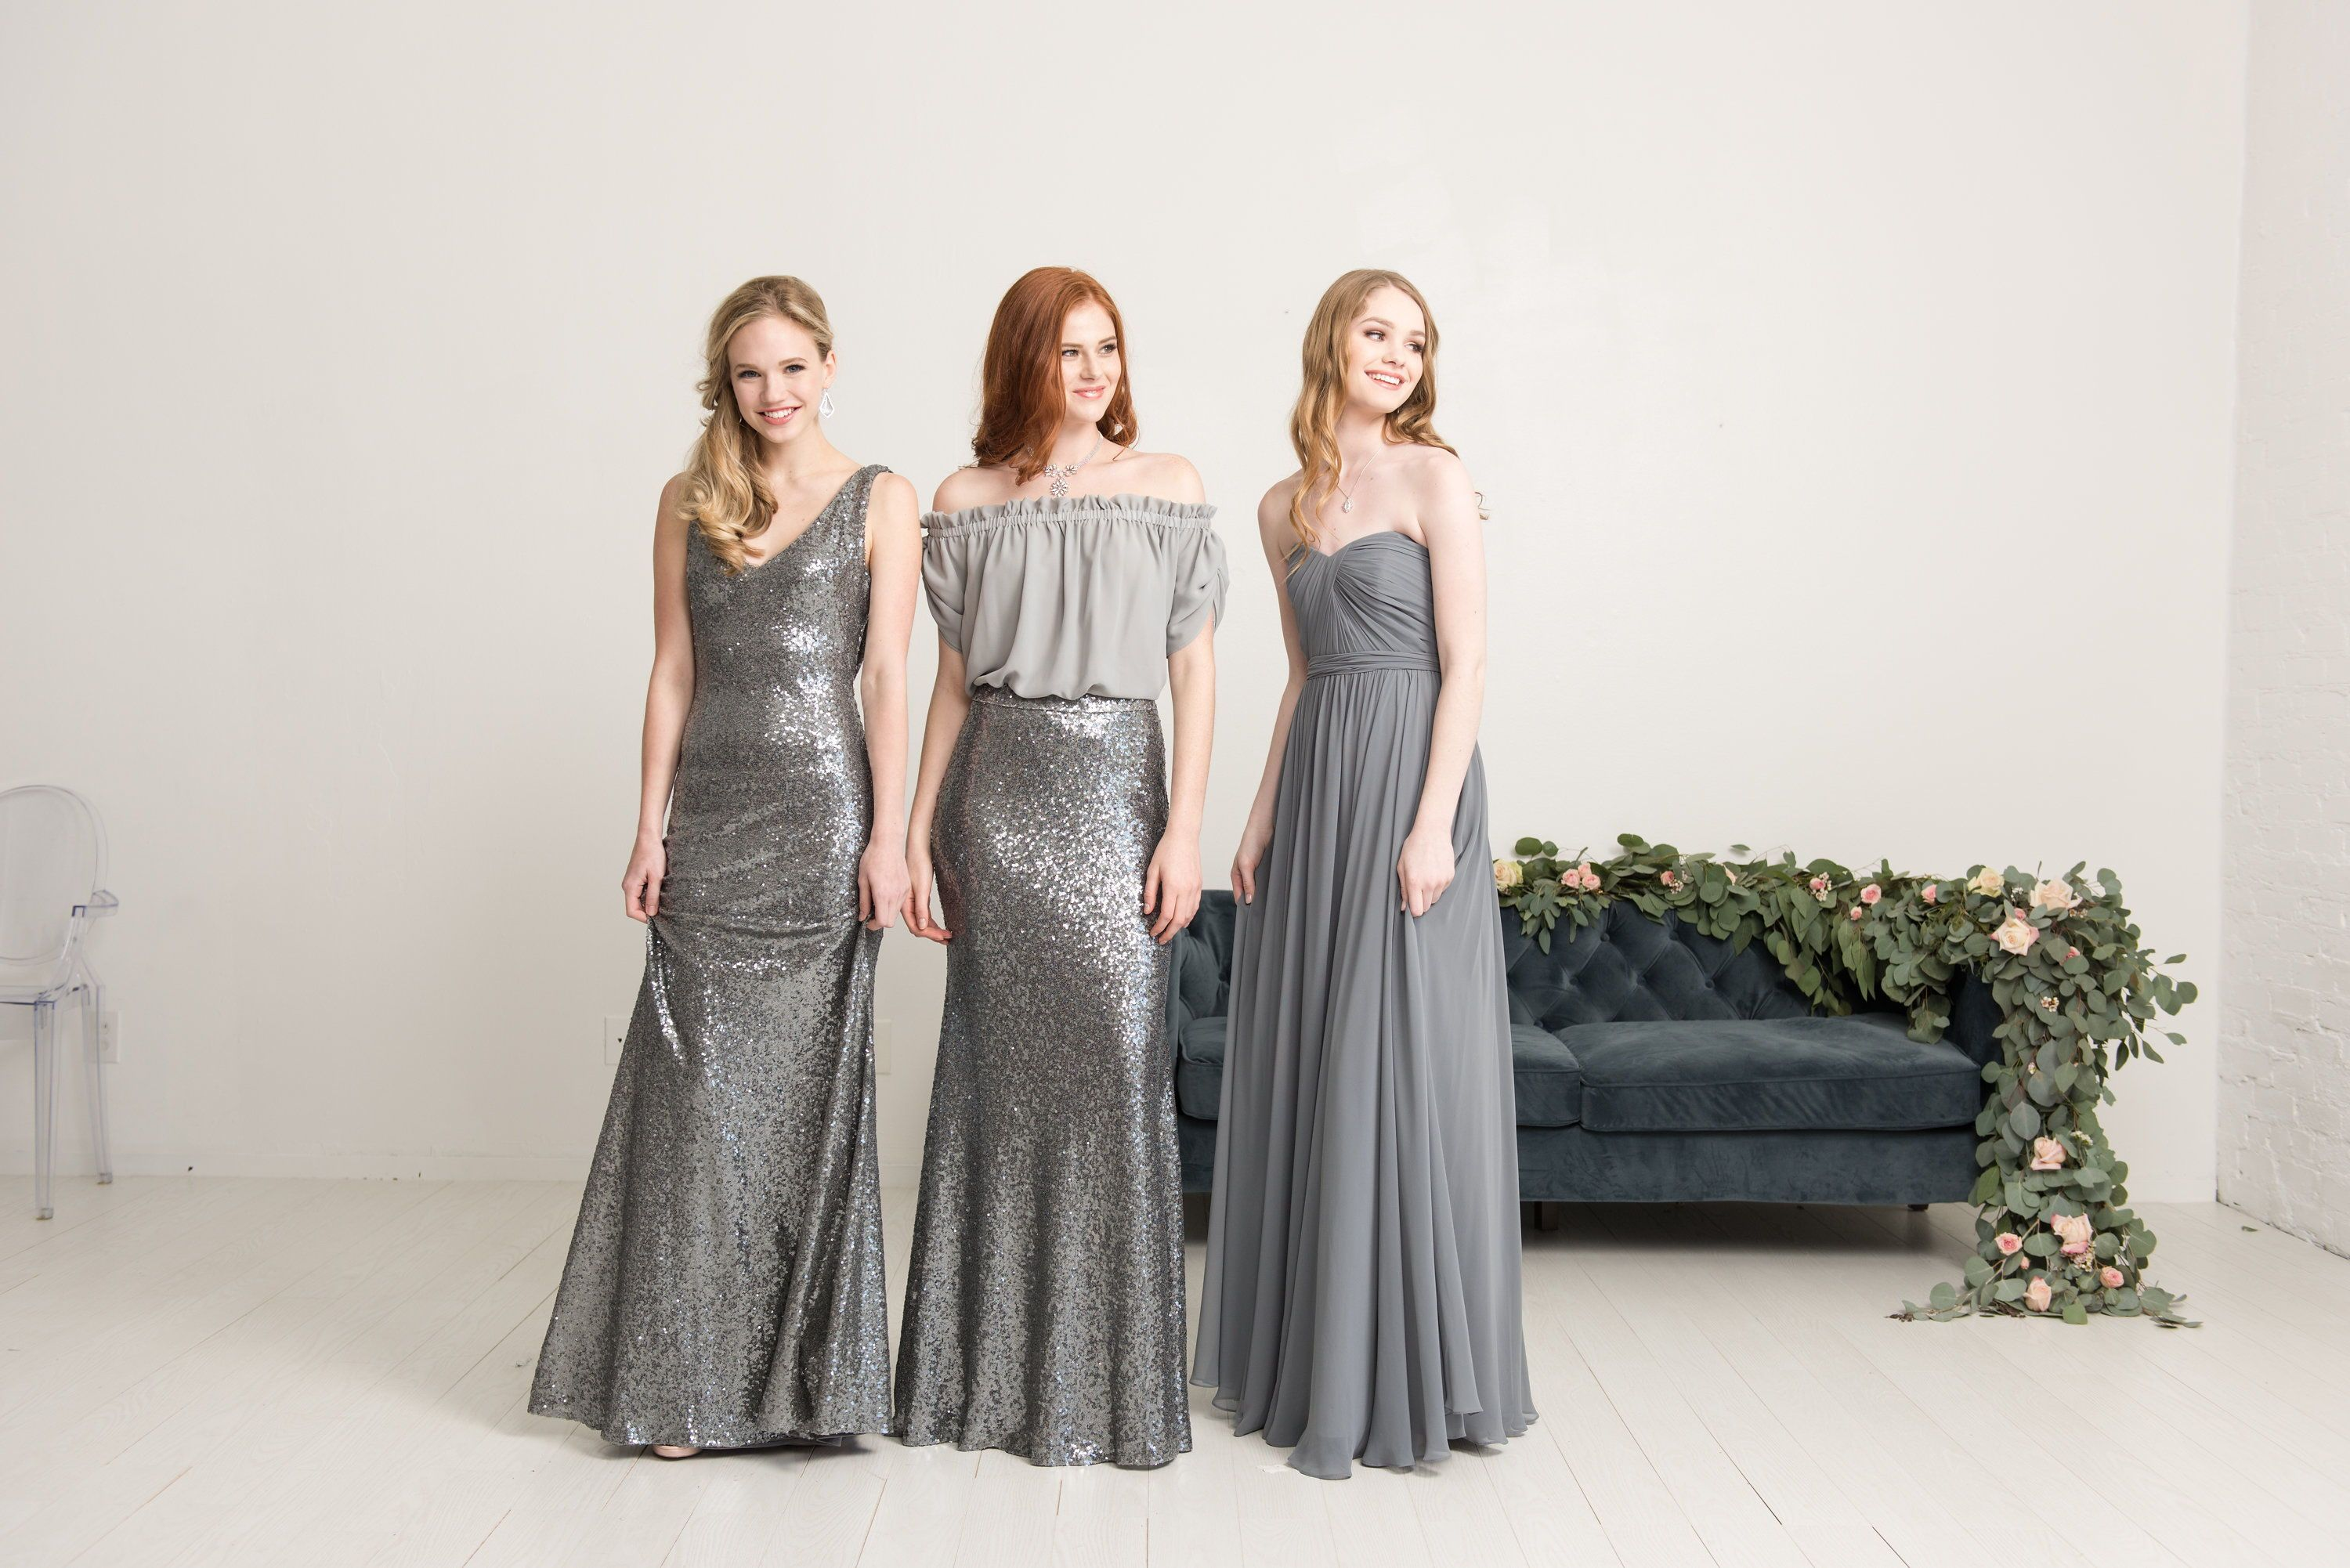 Looking for grey bridesmaids dreses? or sparkly bridesmaids